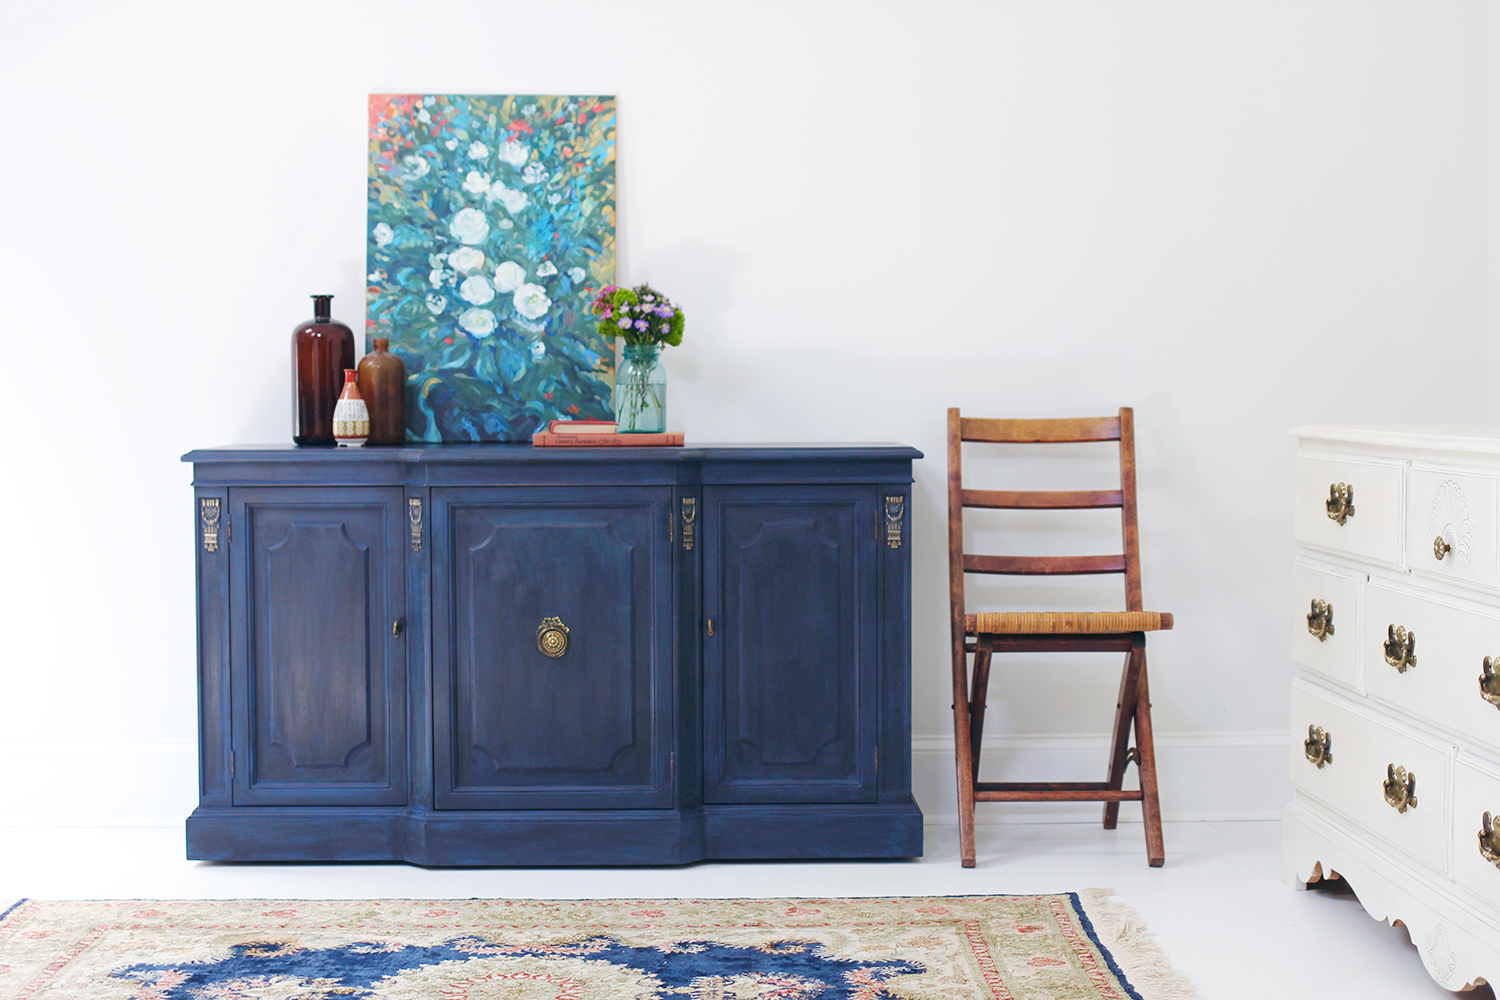 annie-sloan-napoleonic-blue-black-wax-painted-buffet-a-simpler-design-jo-torrijos-4.jpg